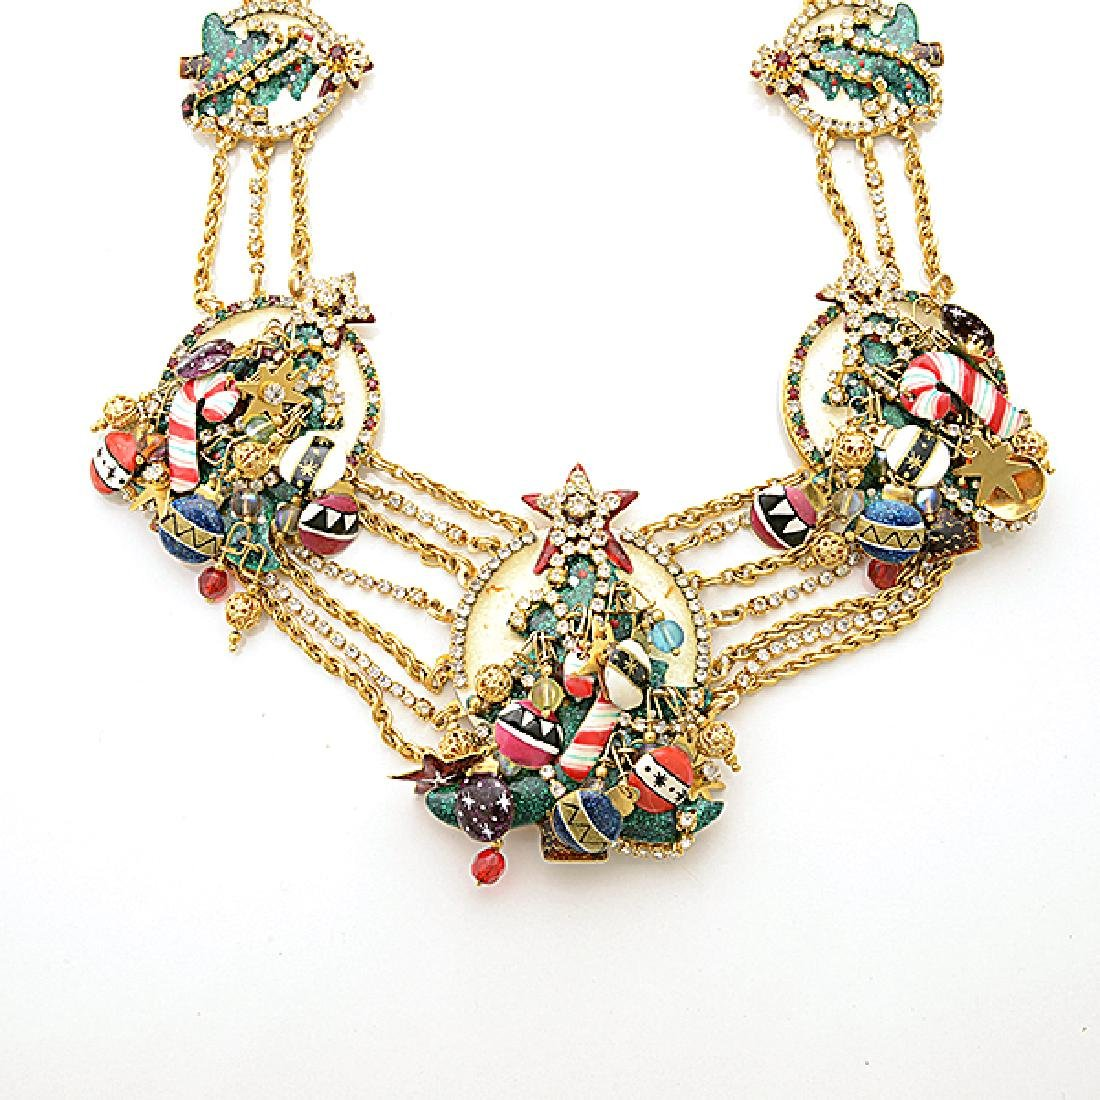 Lunch at the Ritz Couture Christmas Theme Jewelry - 5